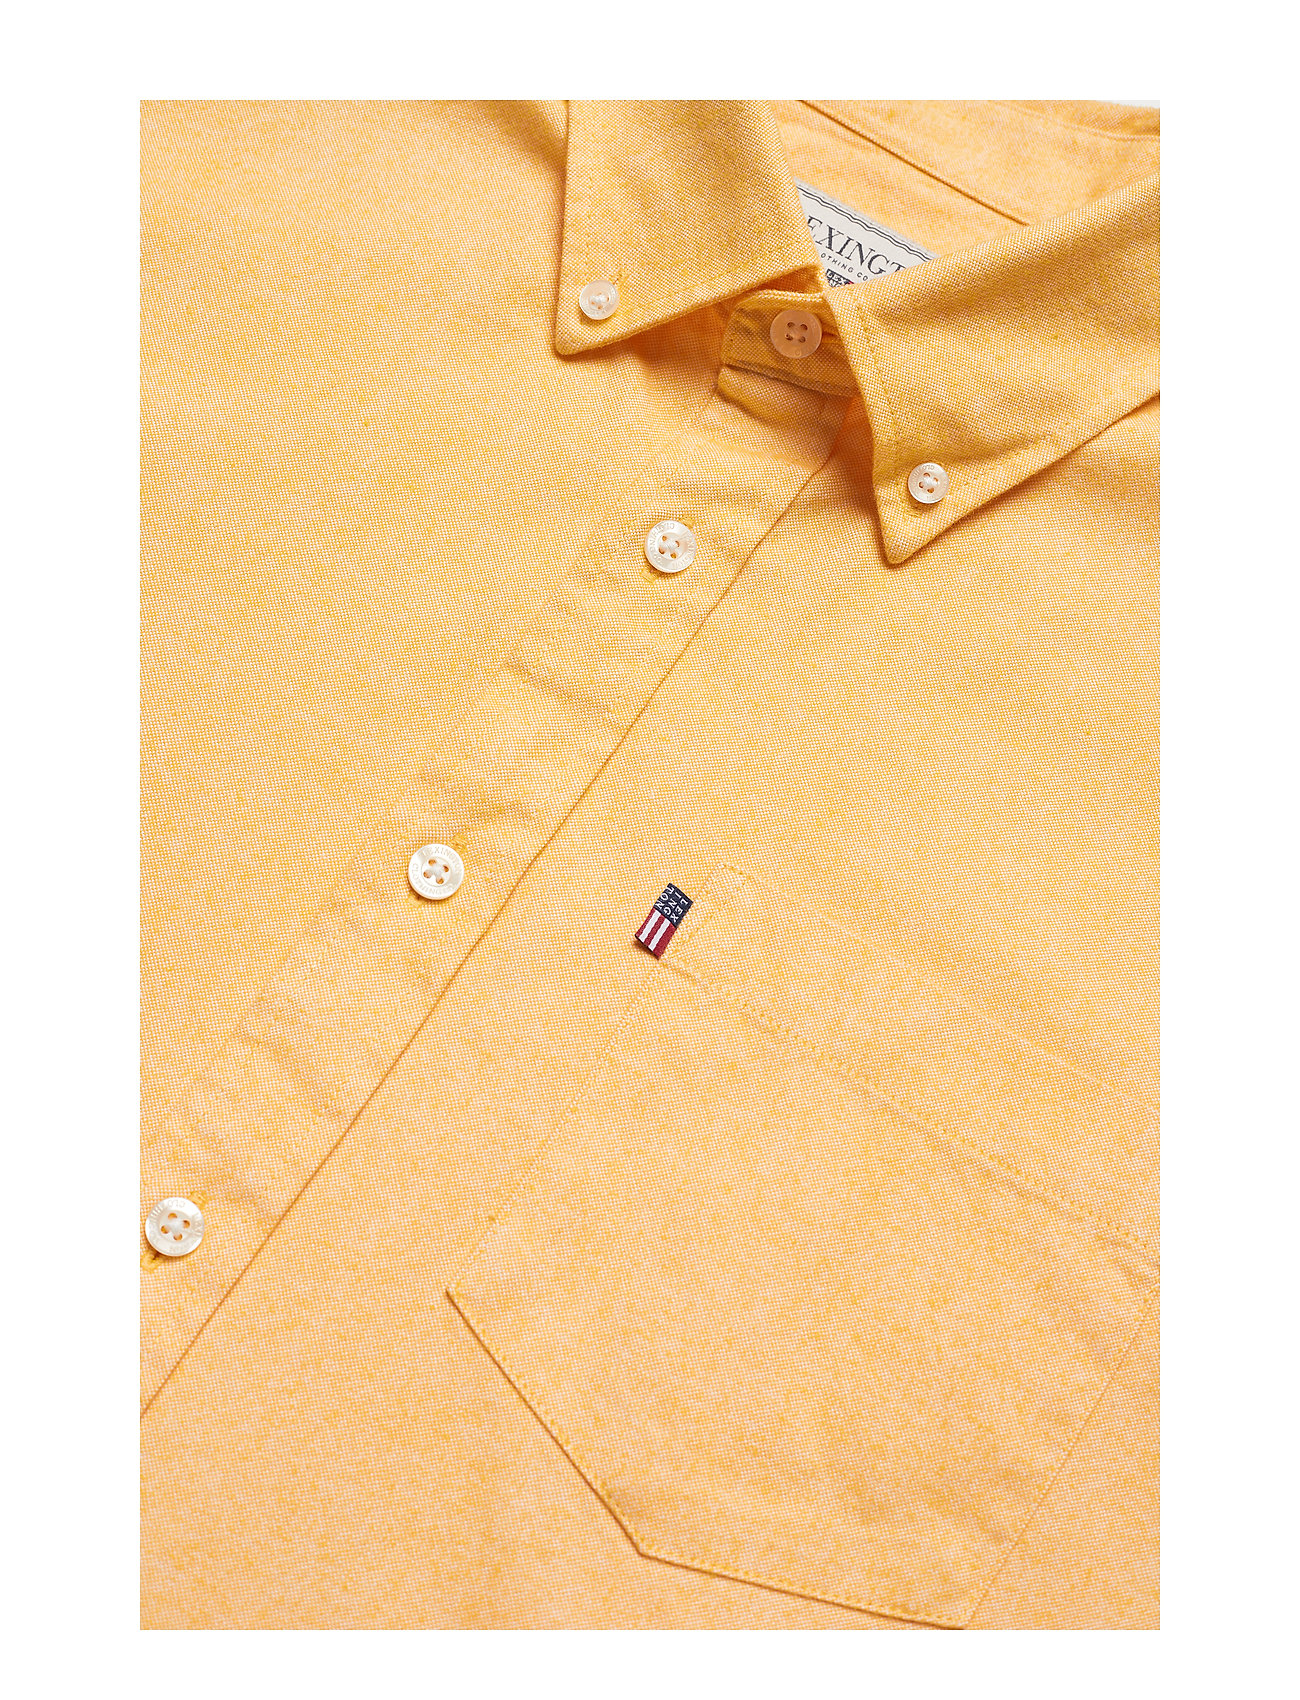 Oxford Kyle Kyle Clothing ShirtyellowLexington Oxford ShirtyellowLexington xBoCerd